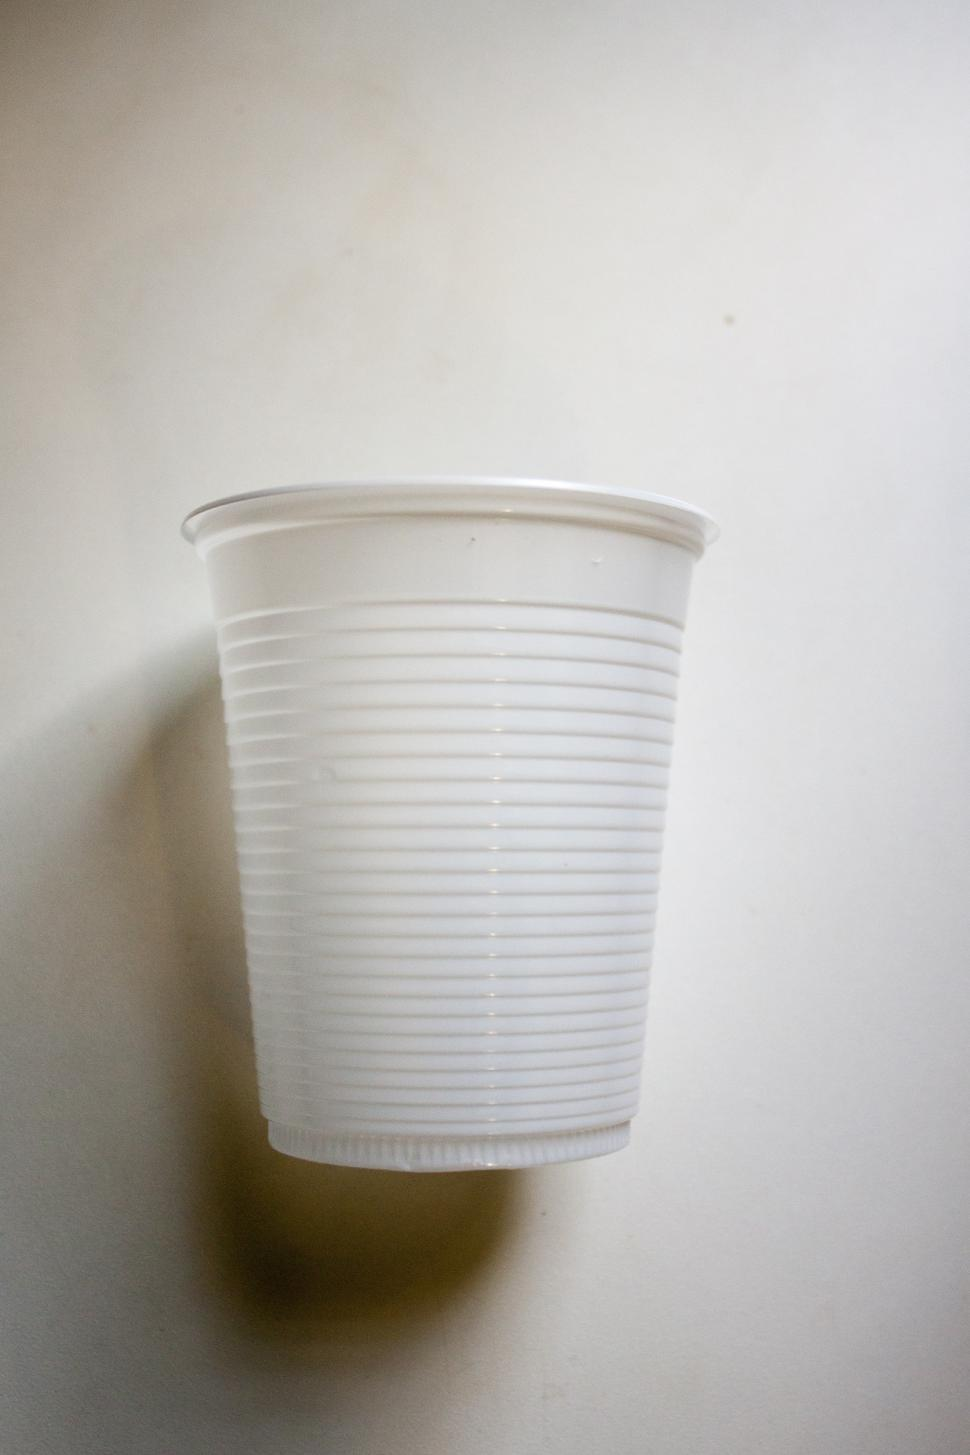 Download Free Stock HD Photo of Disposable plastic cup Online